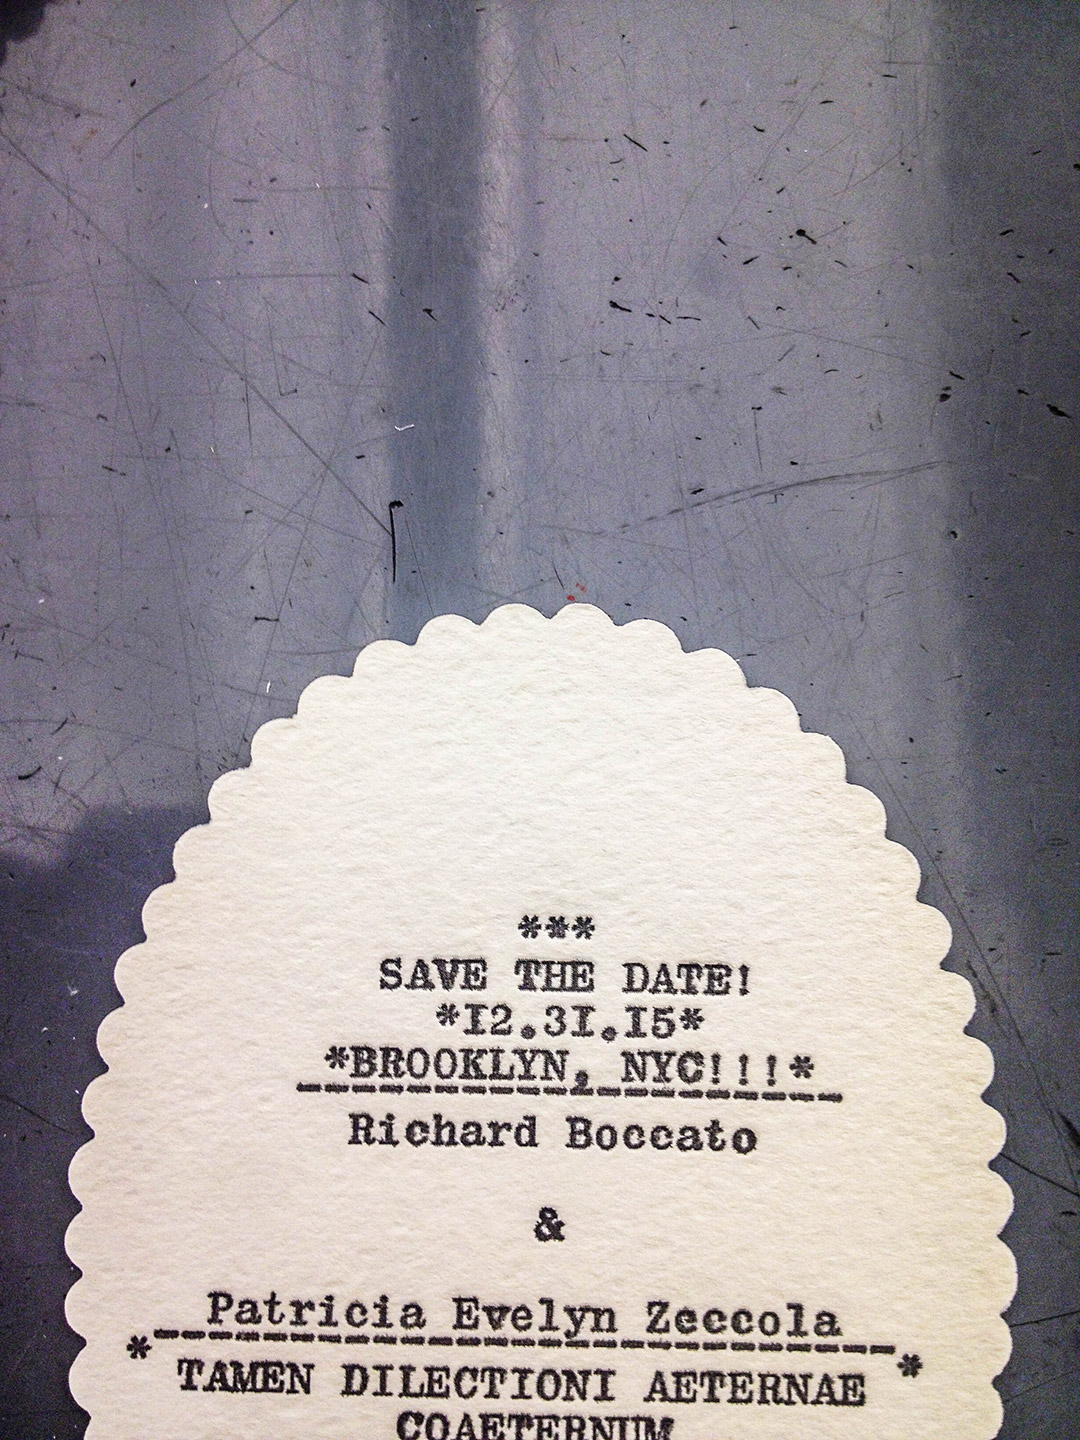 Scalloped edge letterpress save the date for Richard Boccato.